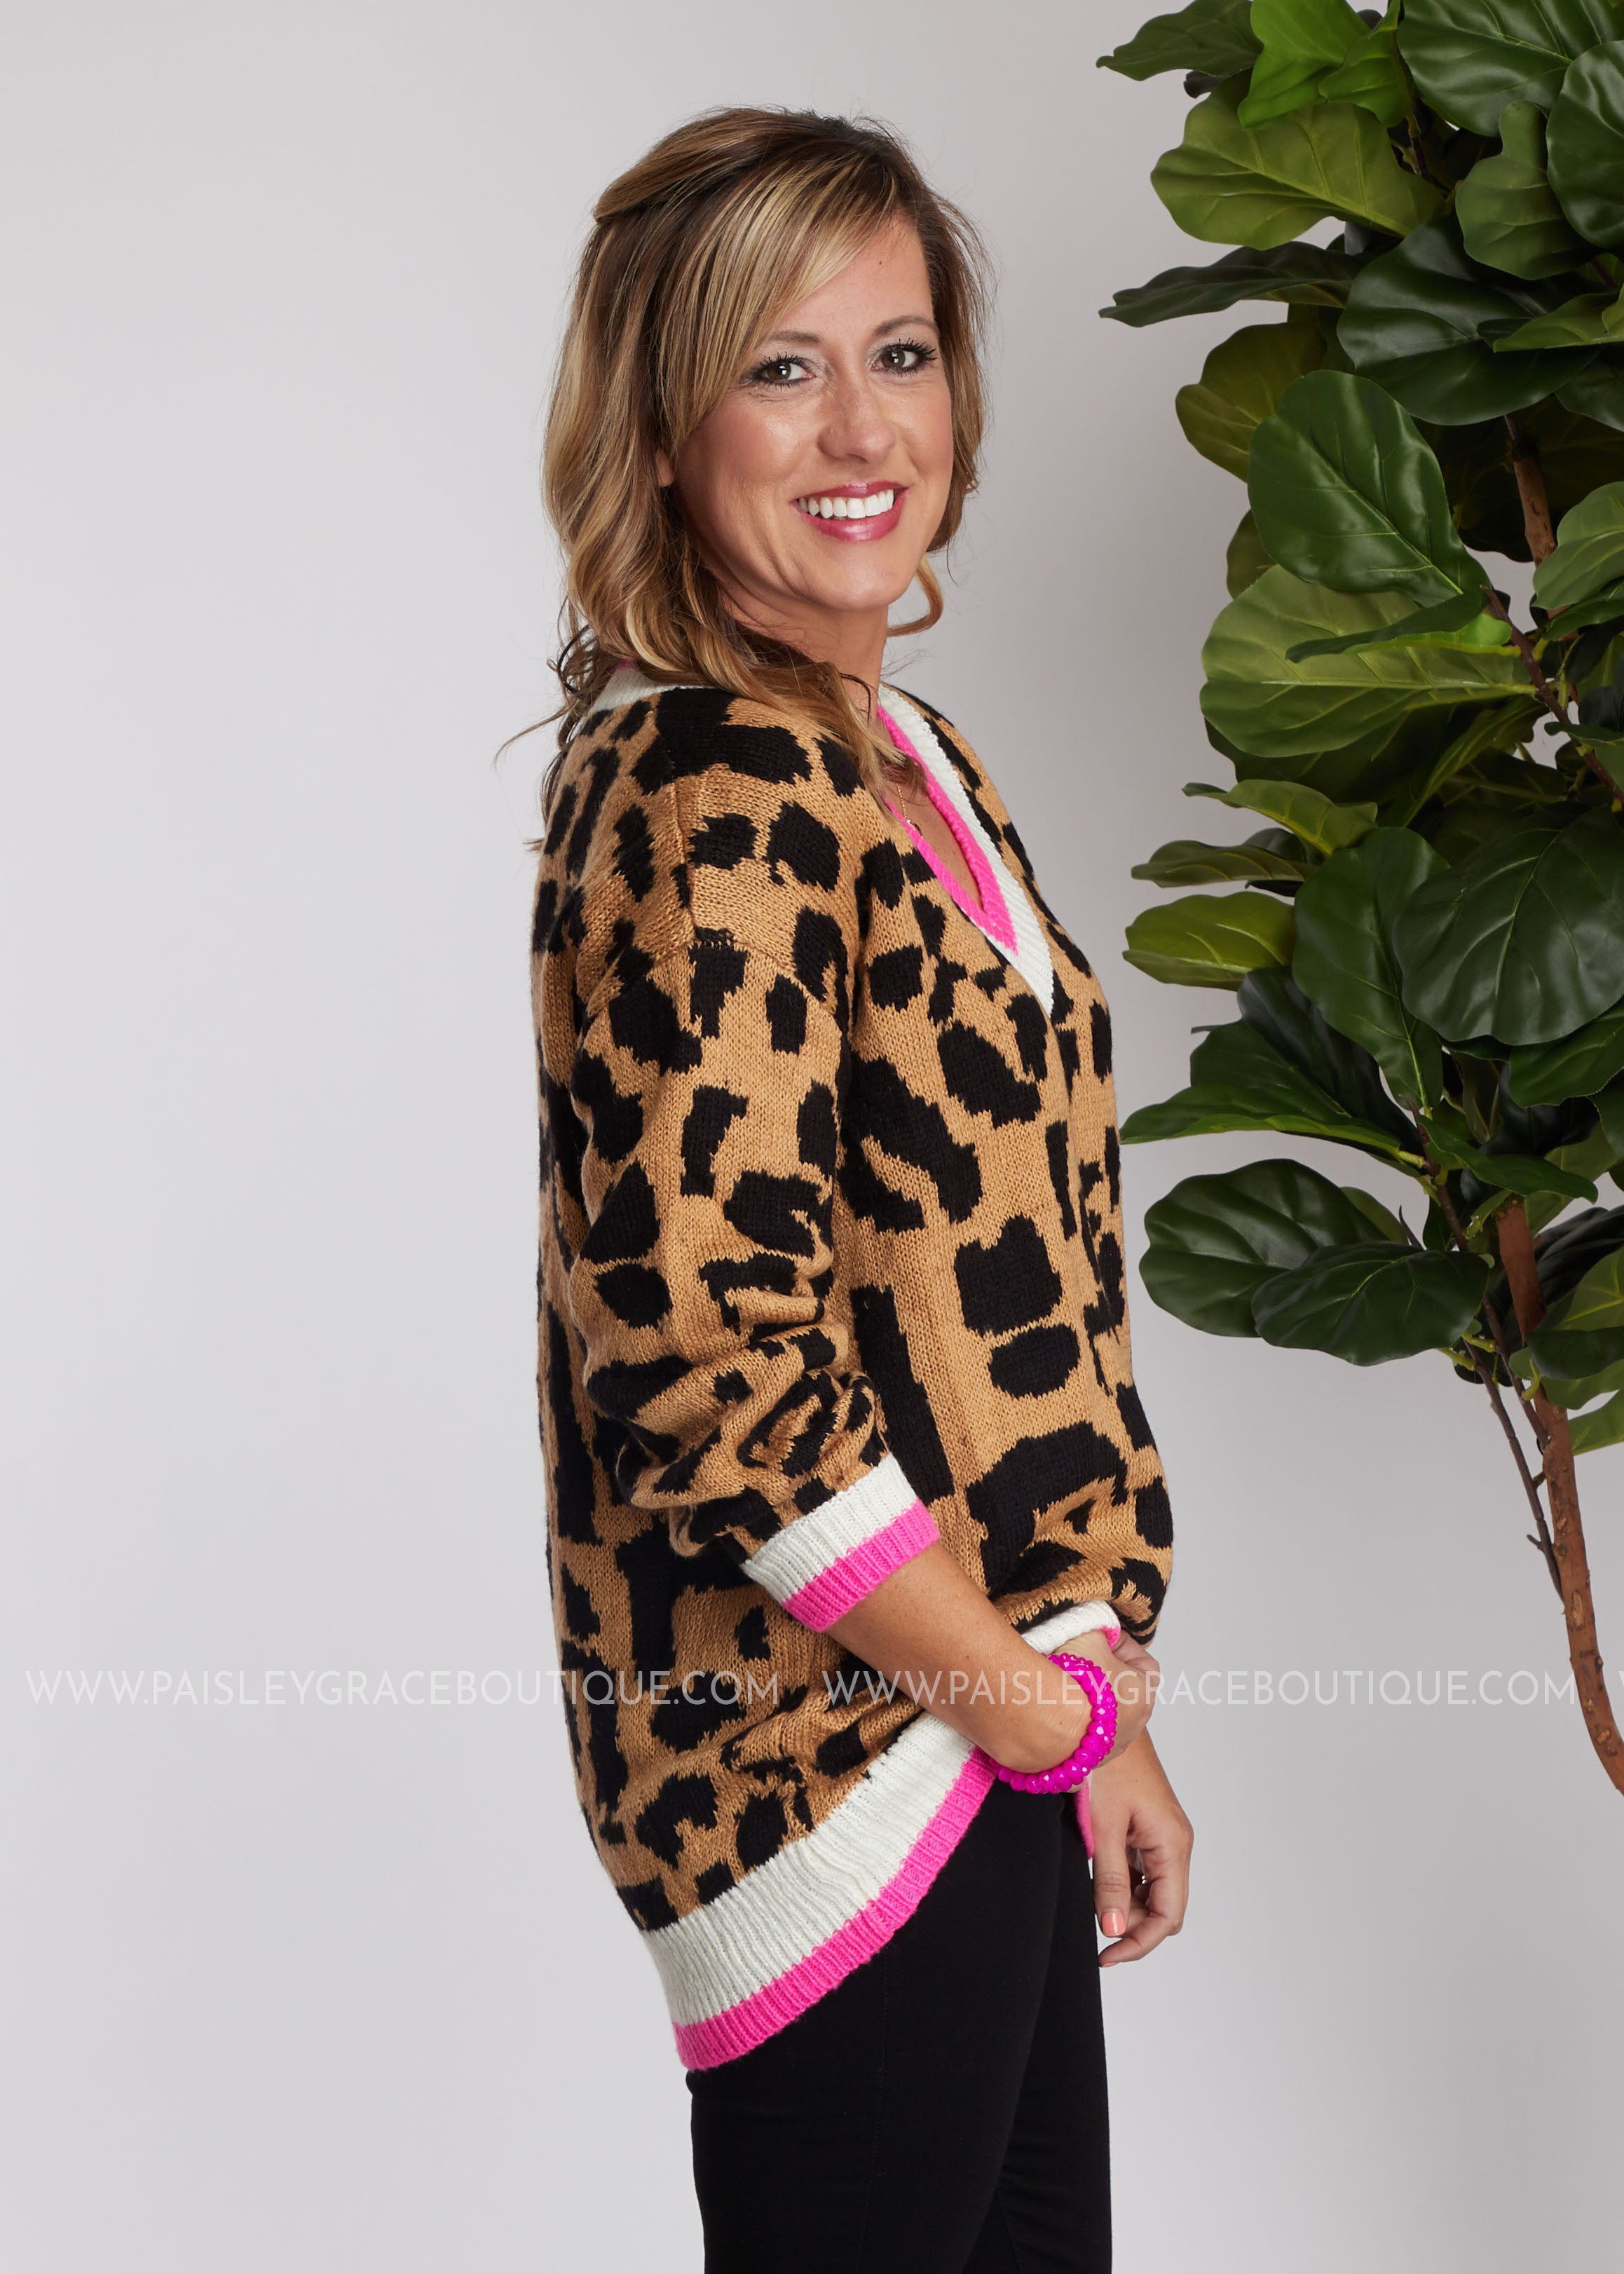 Stacey Leopard Sweater